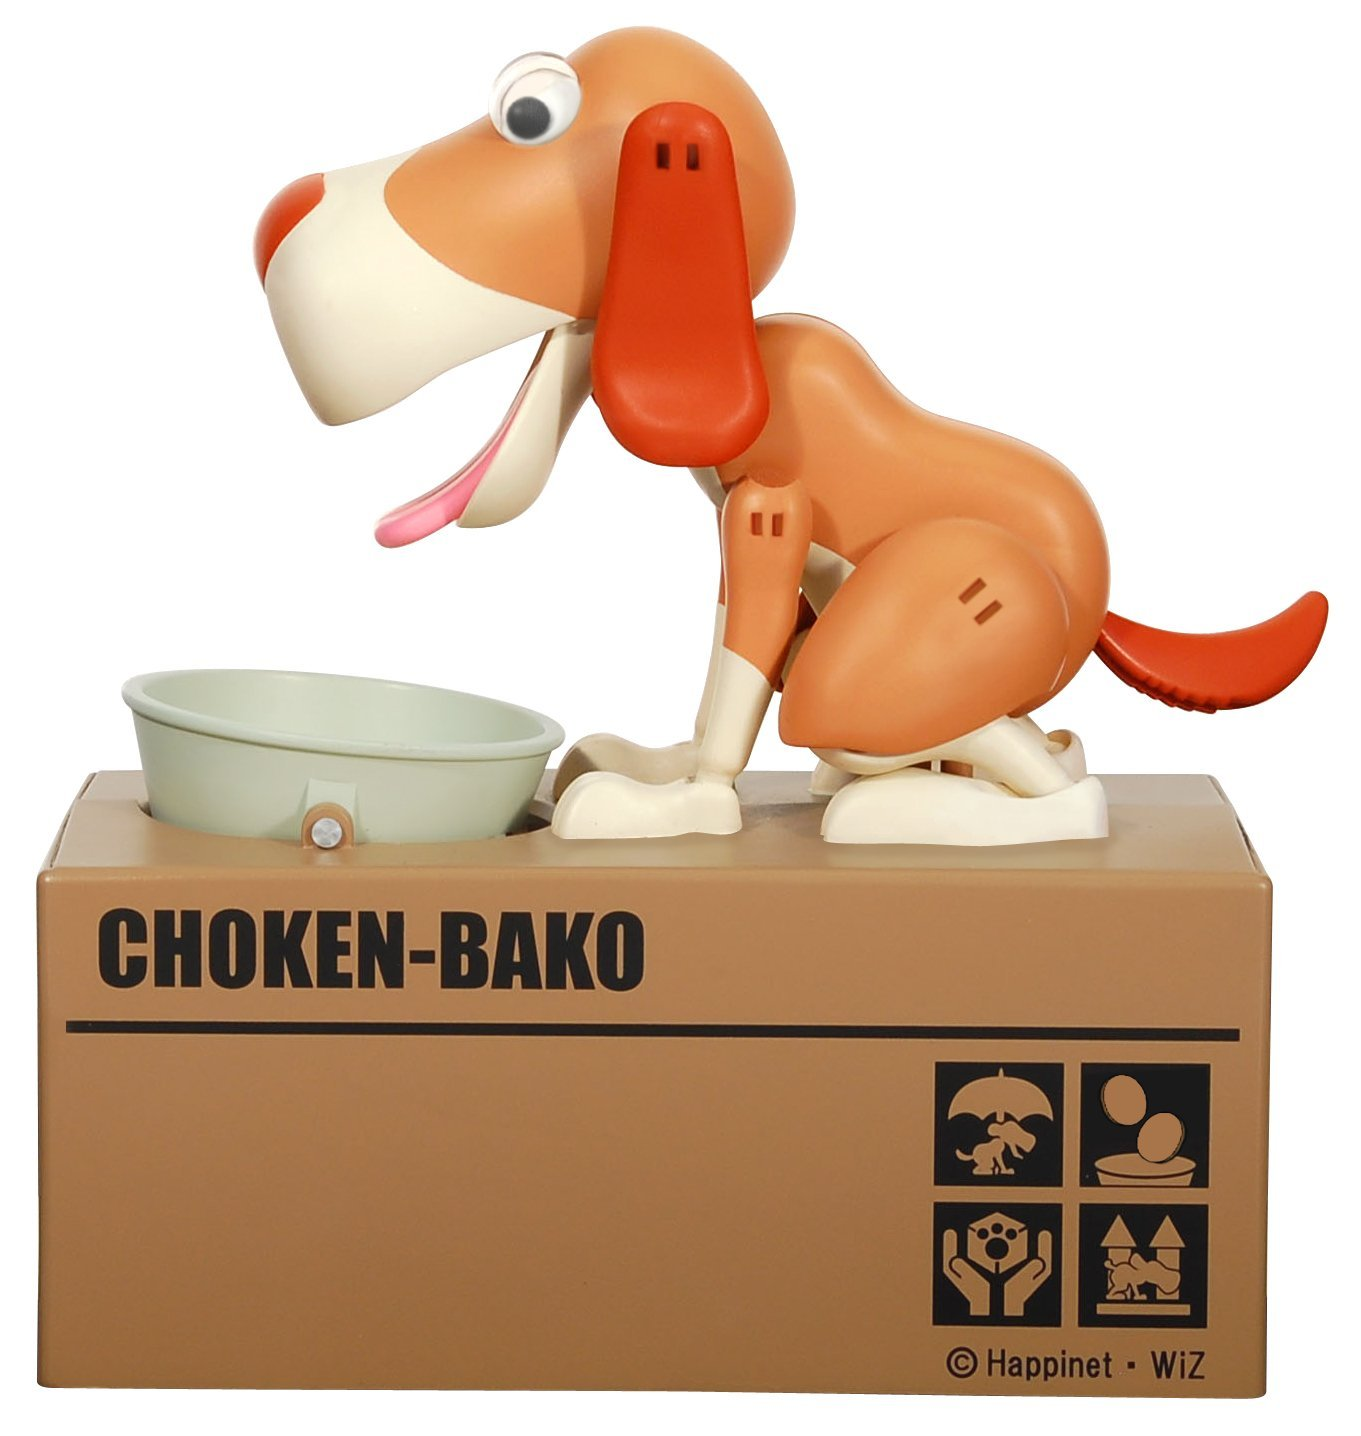 7 Novelty Coin Banks For Kids: Feed the dog